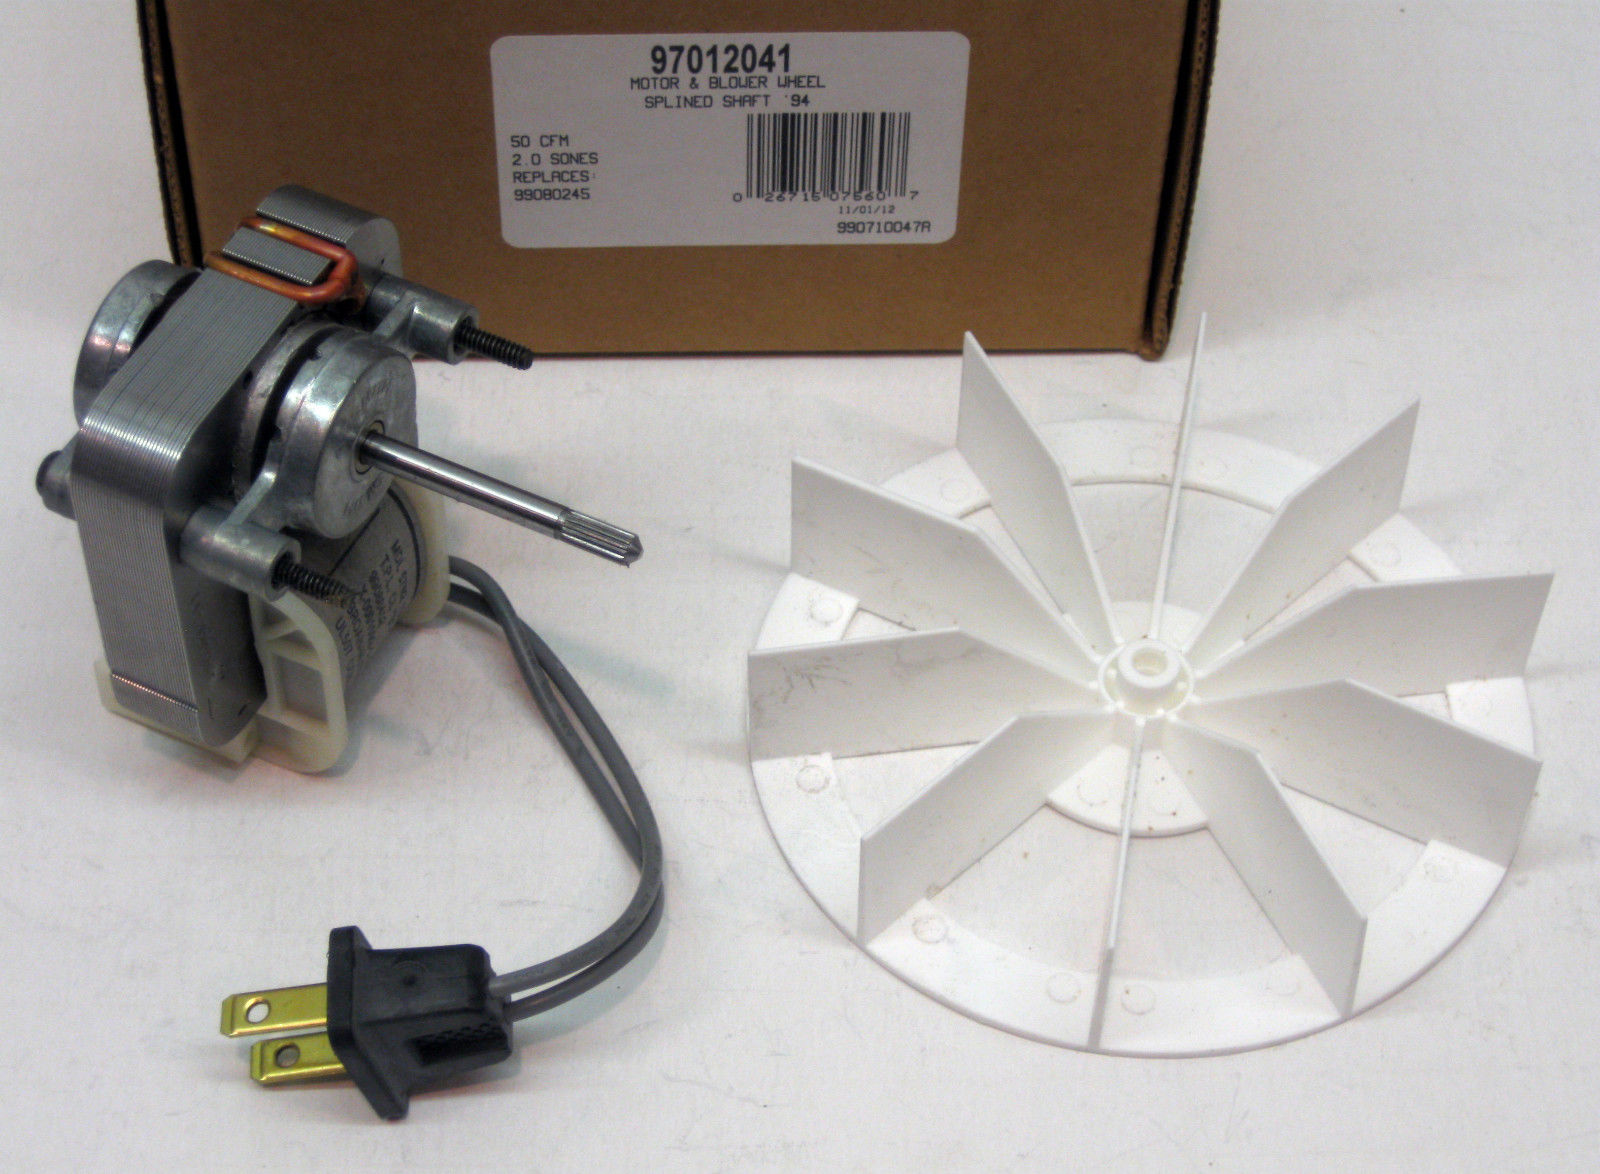 97012041 Broan Nutone Bathroom Vent Fan Motor & Wheel 50 cfm repl. 99080245  - Walmart.com